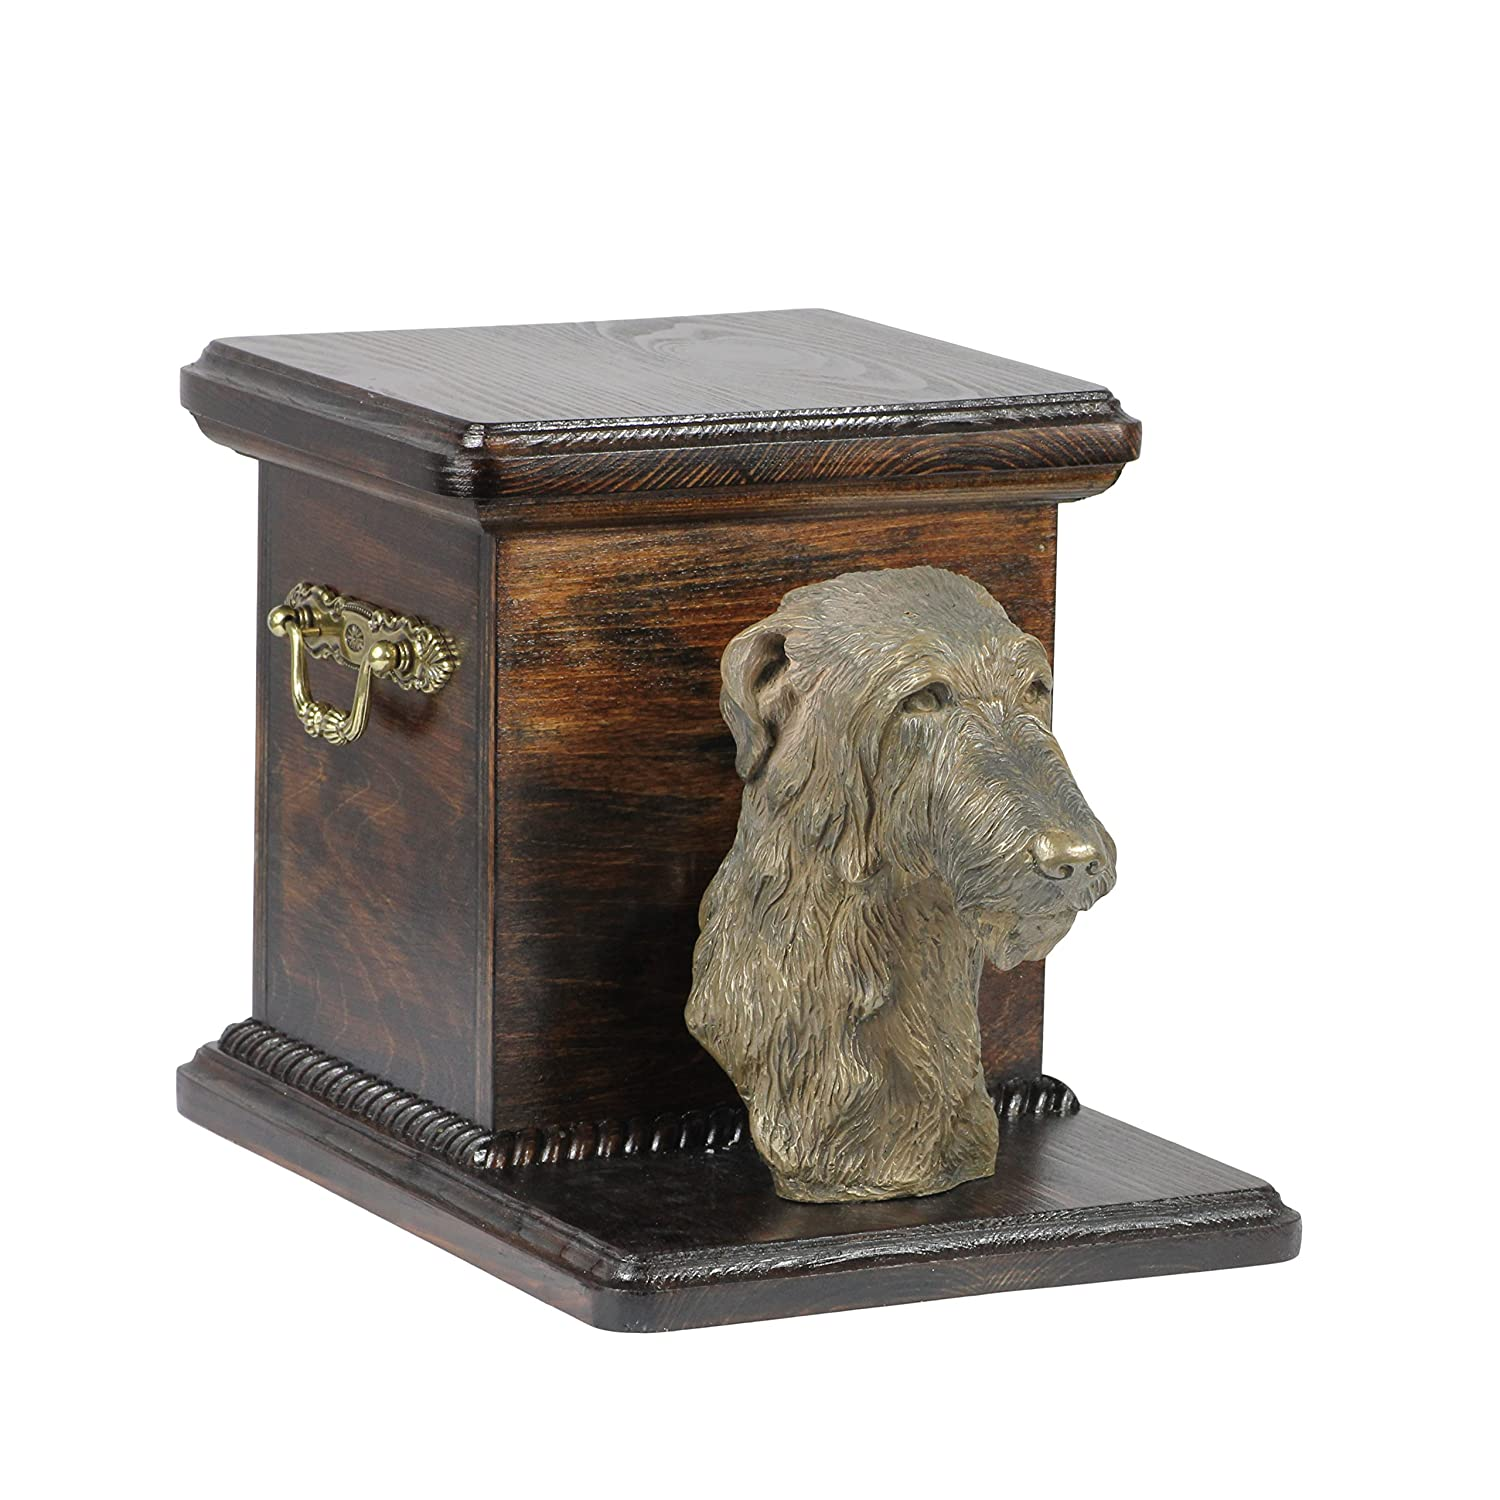 Deerhound, memorial, urn for dog's ashes, with dog statue, ArtDog